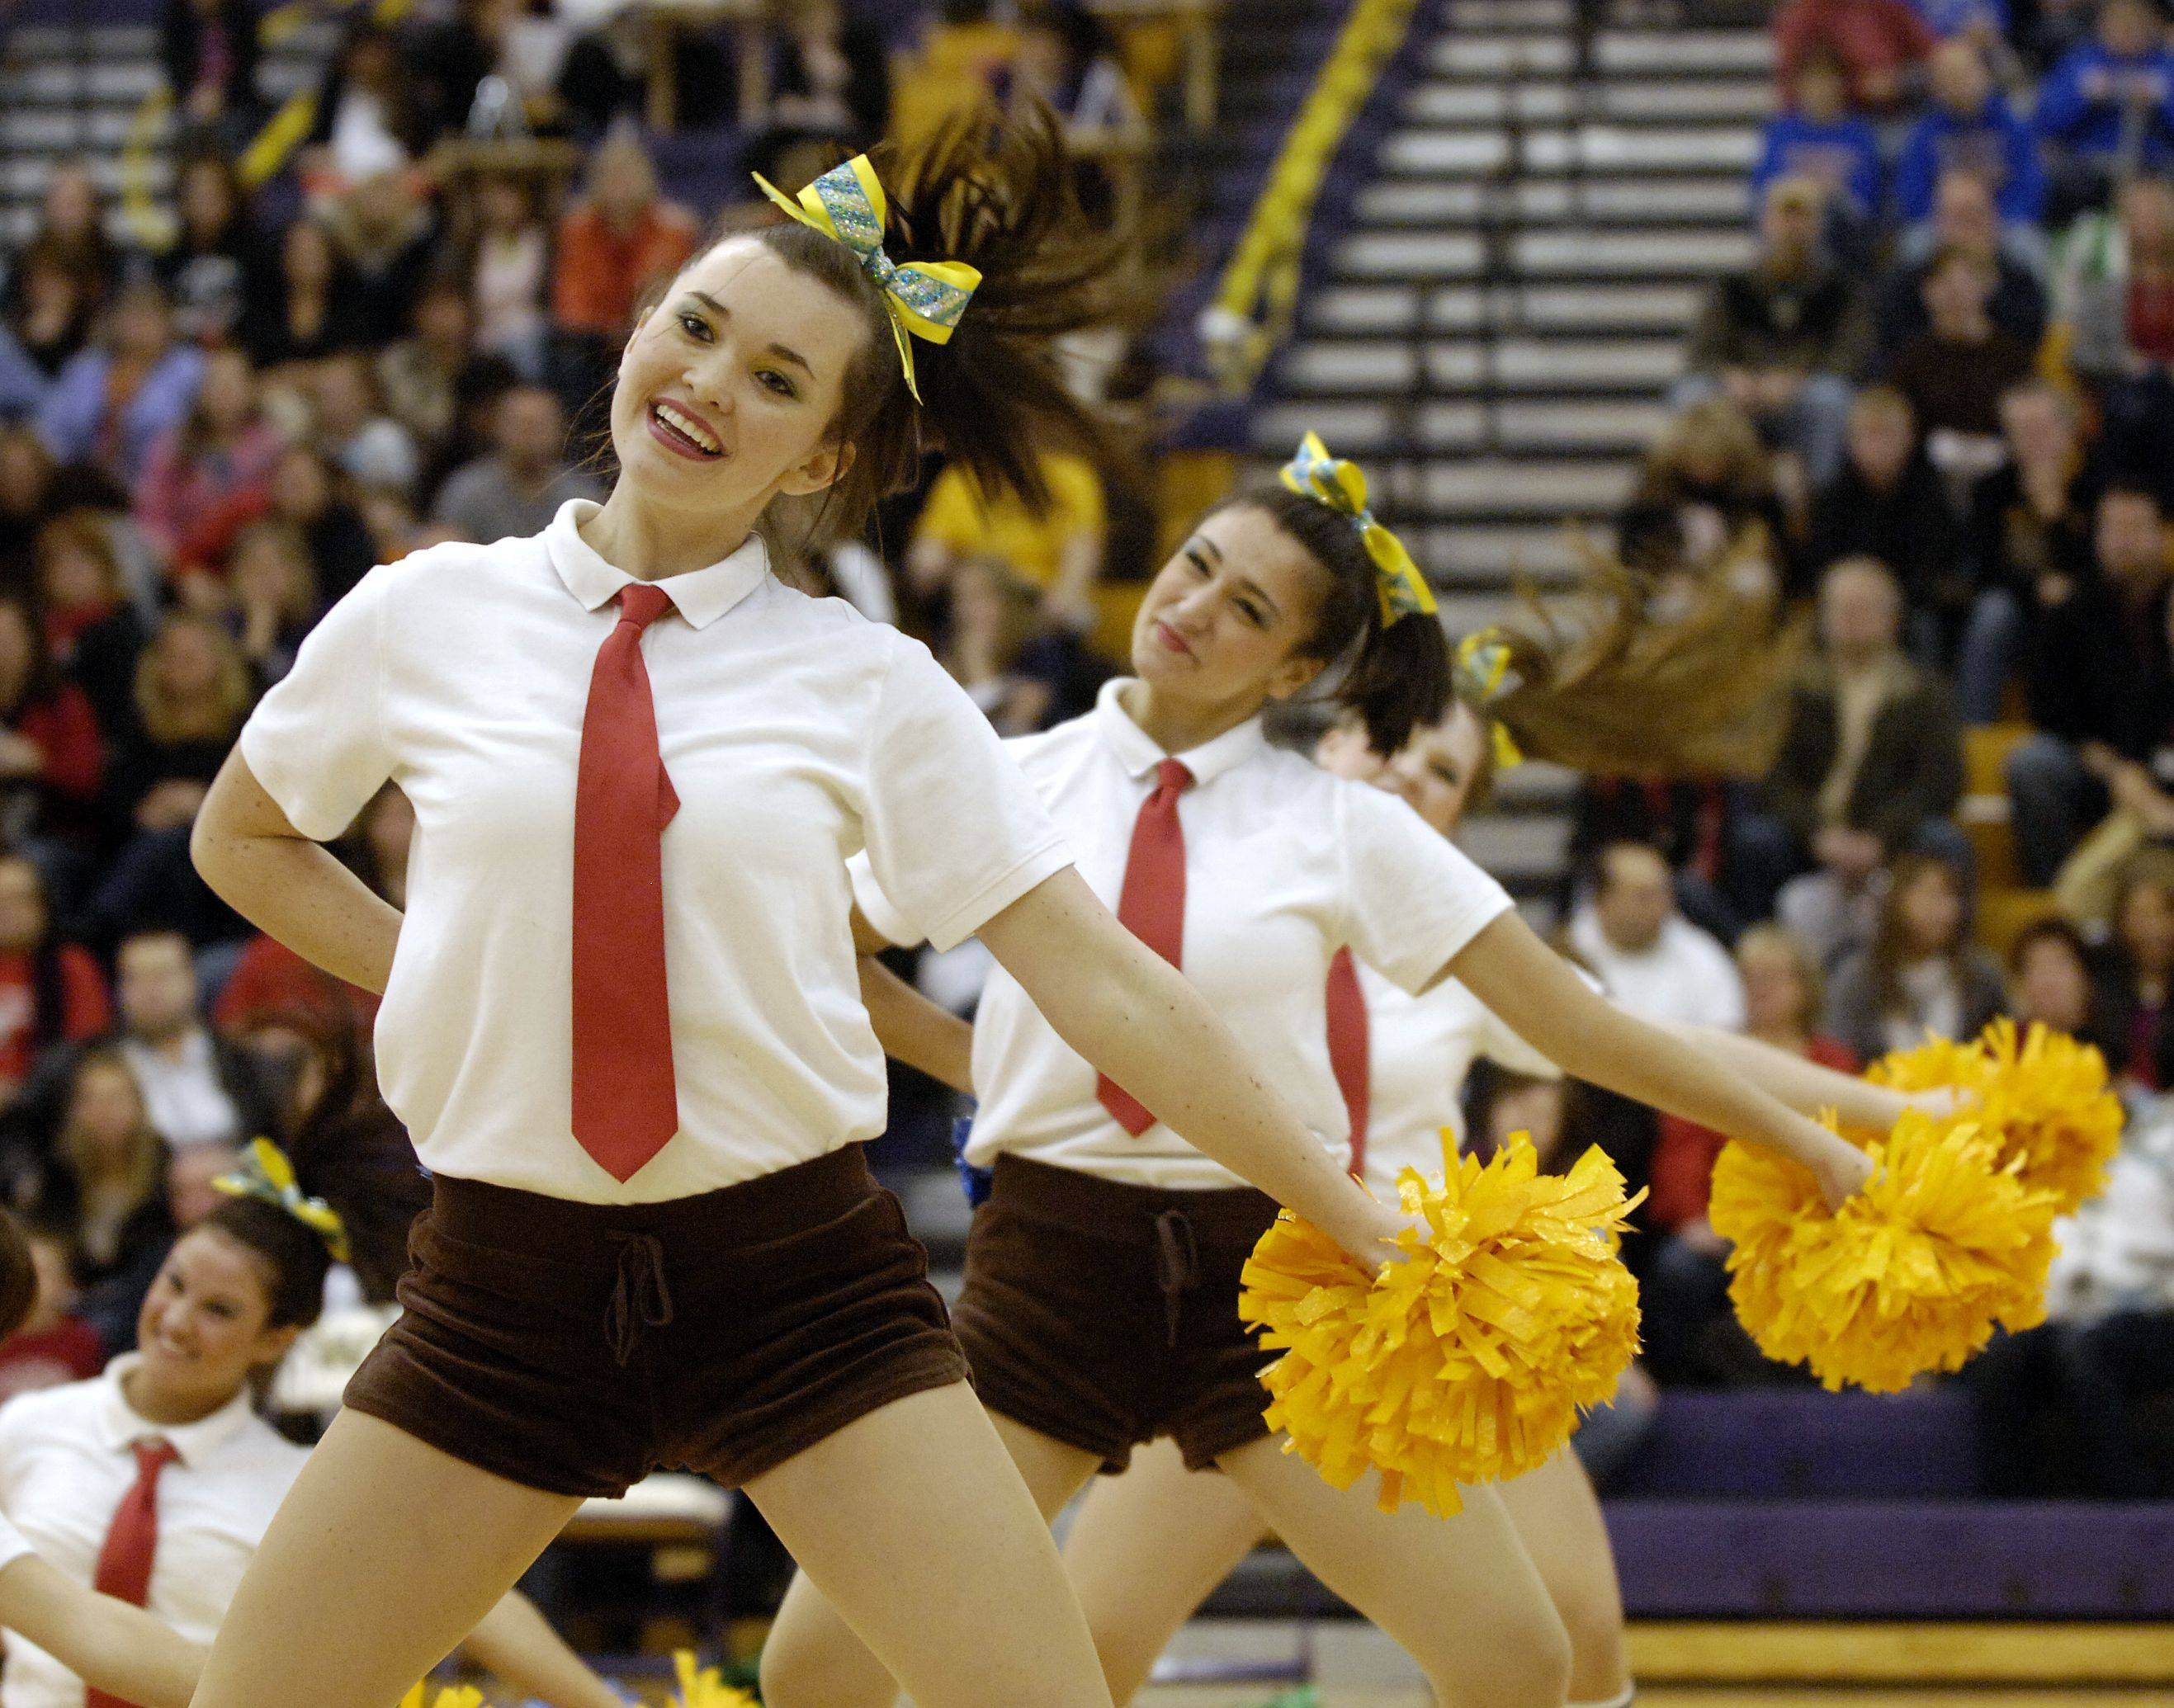 Conant High School performs in the JV Poms division Sunday during the Team Dance Illinois Wauconda Invitational competition at Wauconda High School. 22